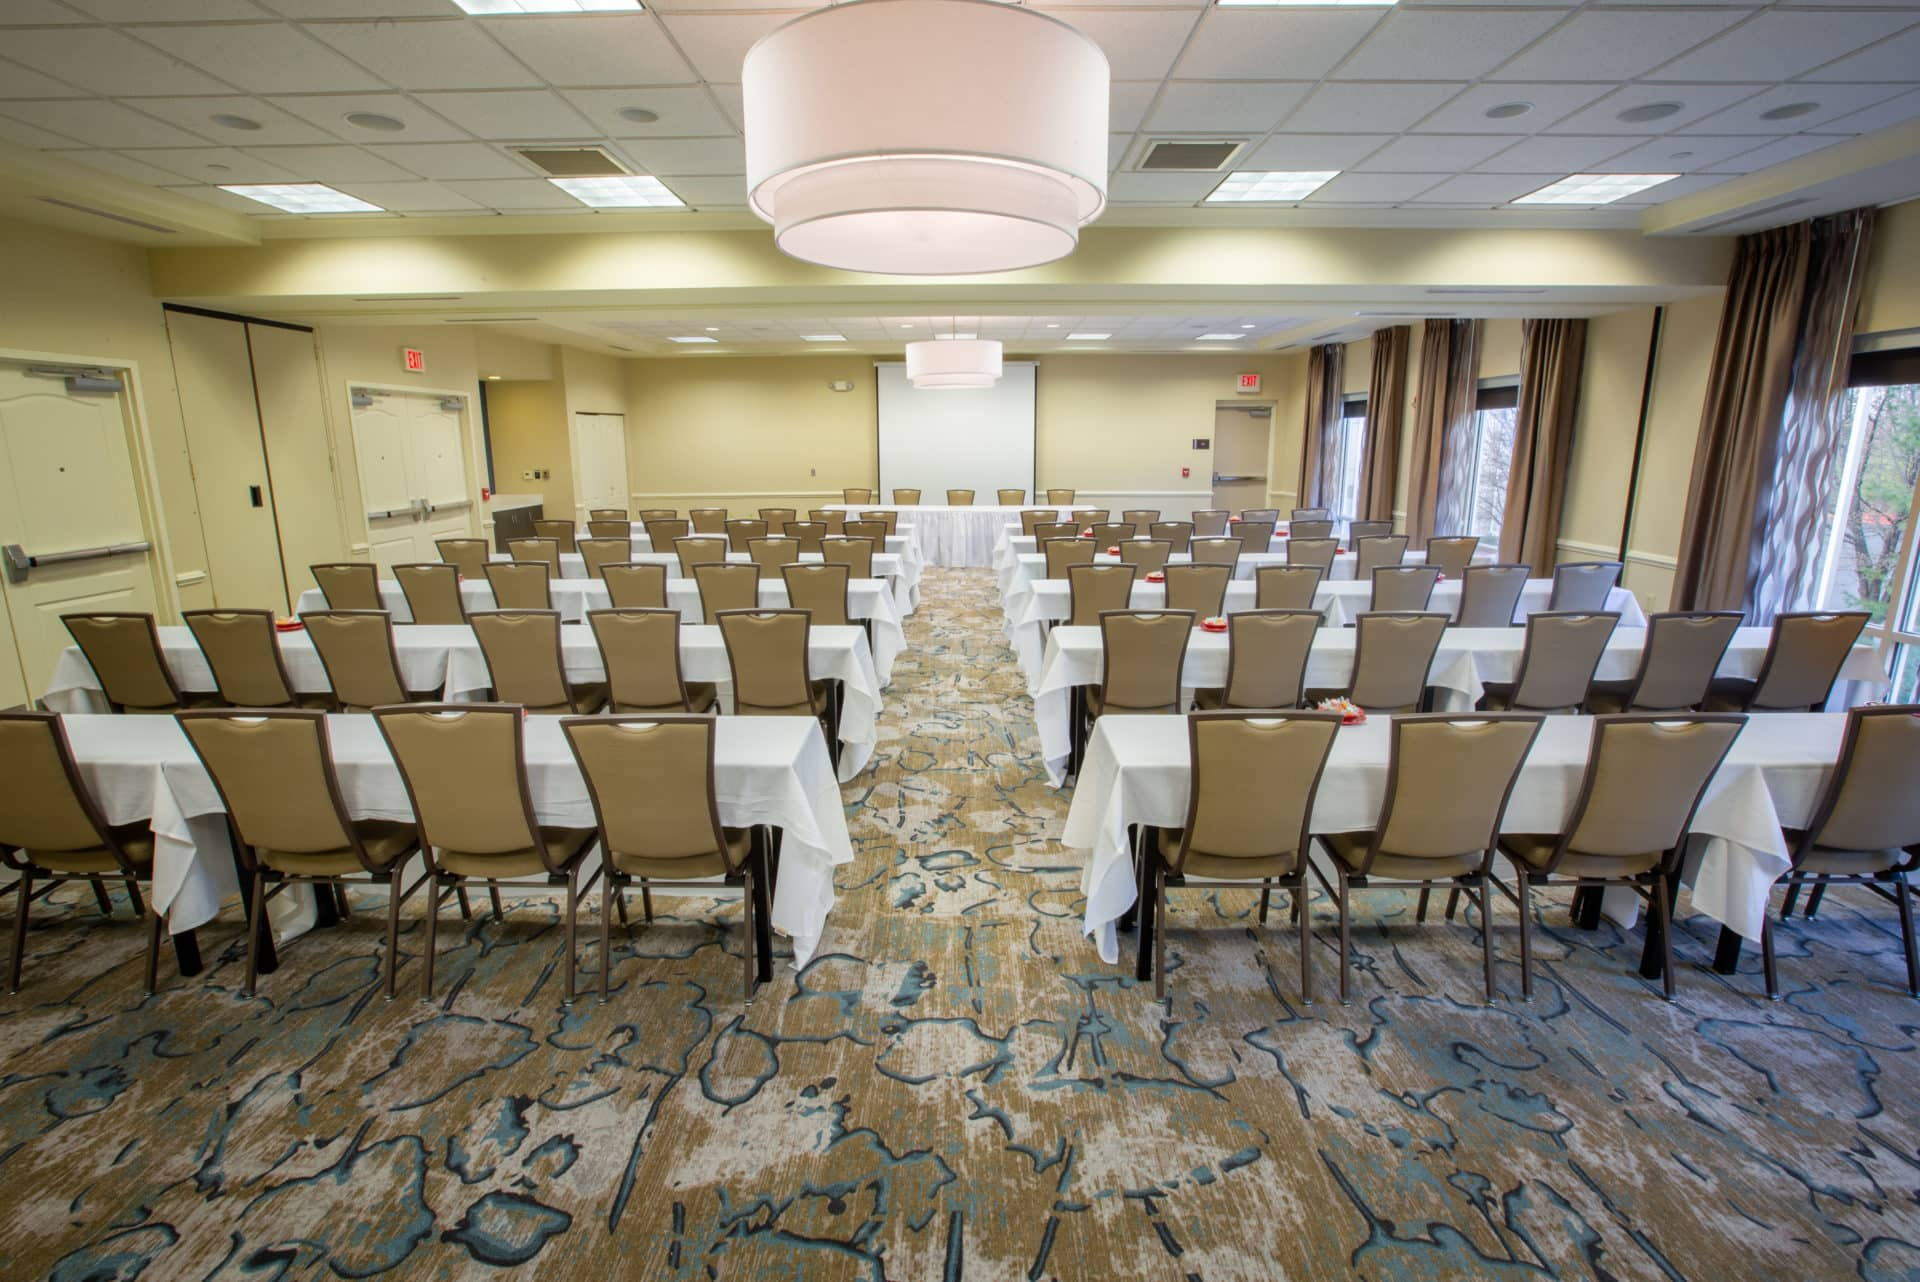 Hilton Garden Inn Conference/Meeting Room